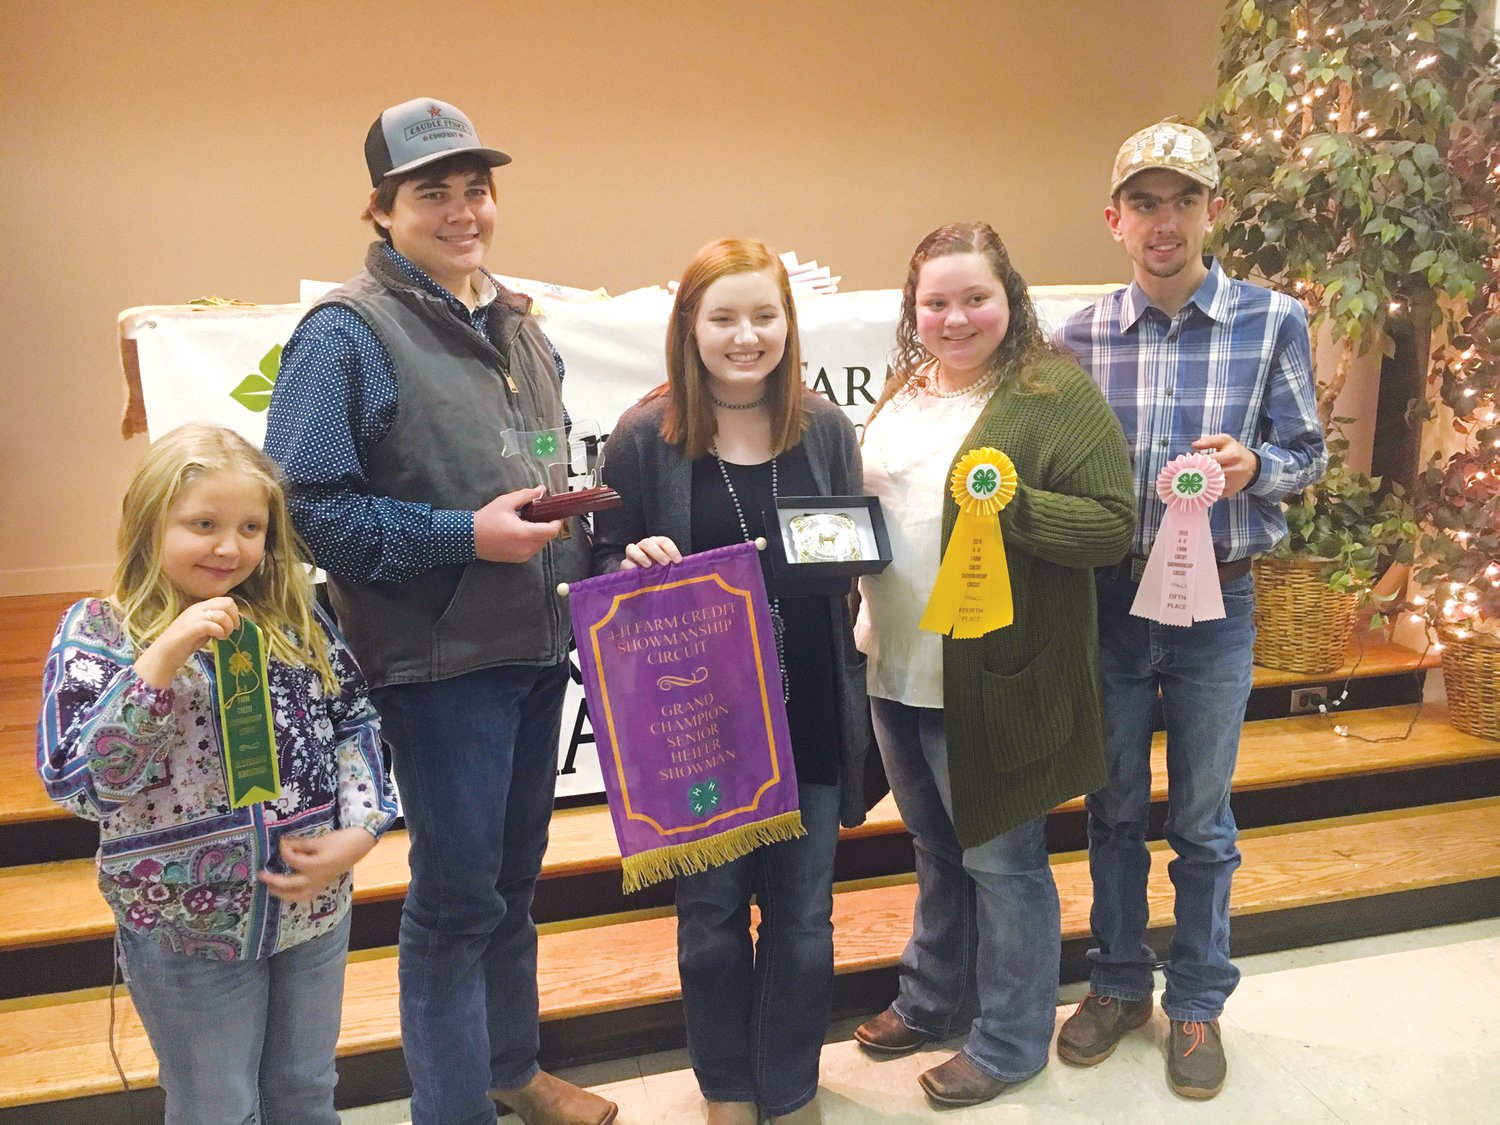 Chatham County winners at the 4-H Showmanship contest included, from left, Heidi Spainhour, Luke White, Lindsay Seitz, Katelyn Batchelor and Hunter Batchelor..